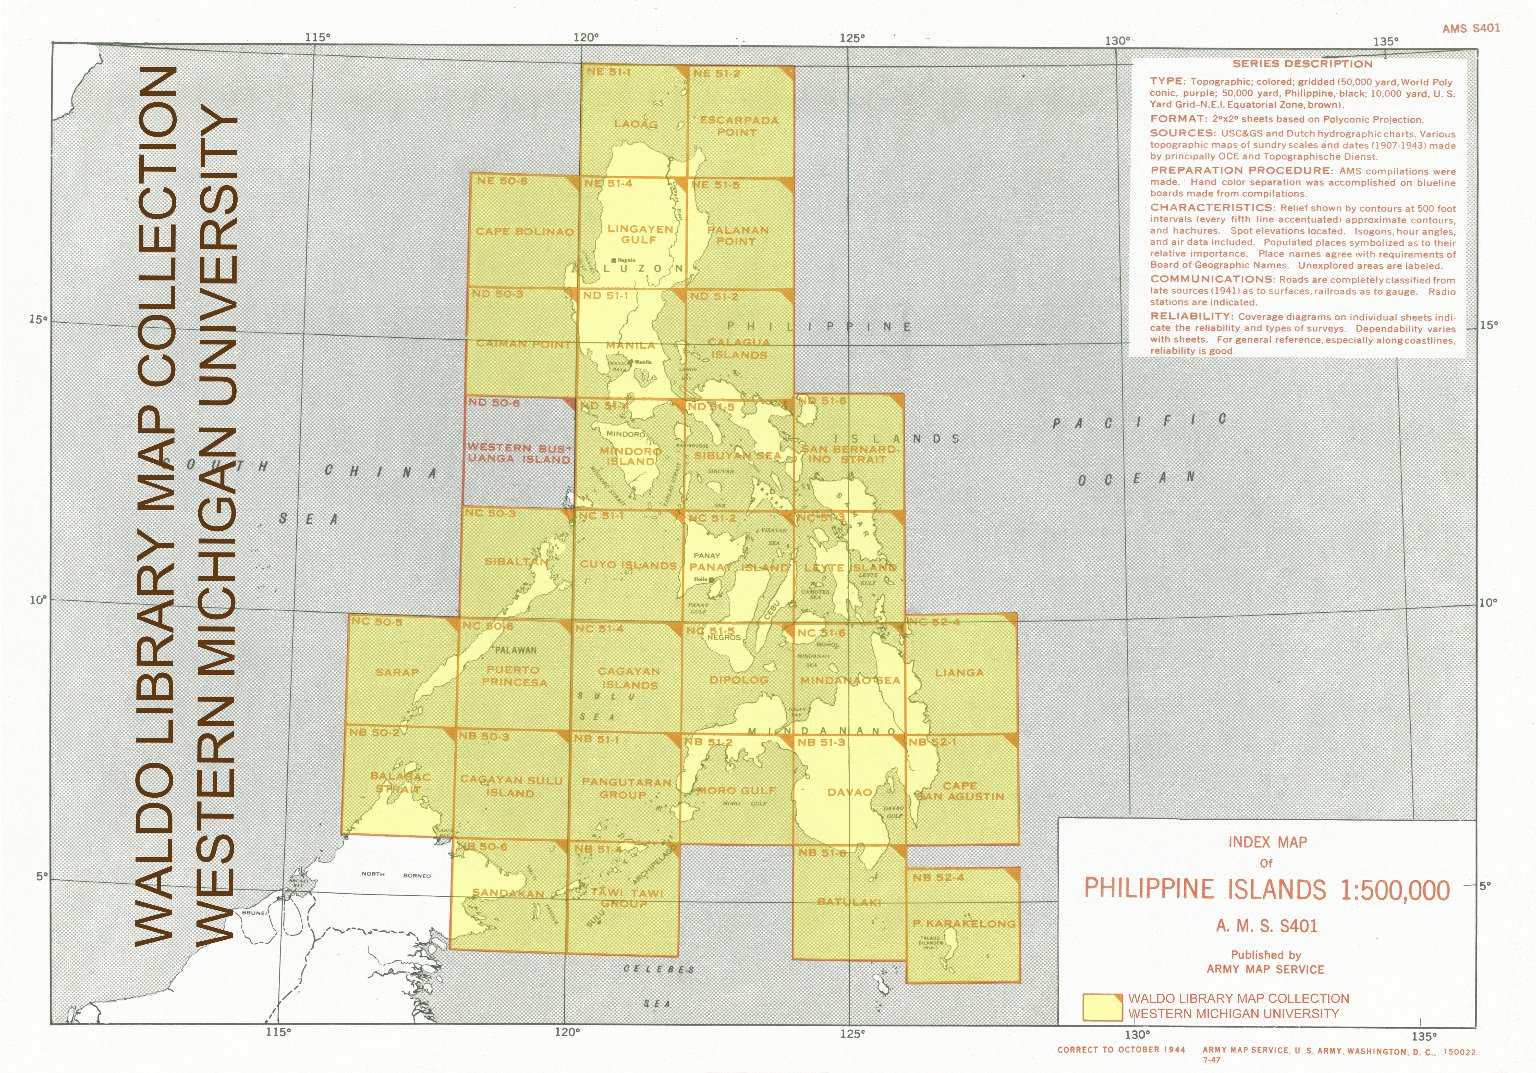 Index map of Philippine Islands 1:500,000